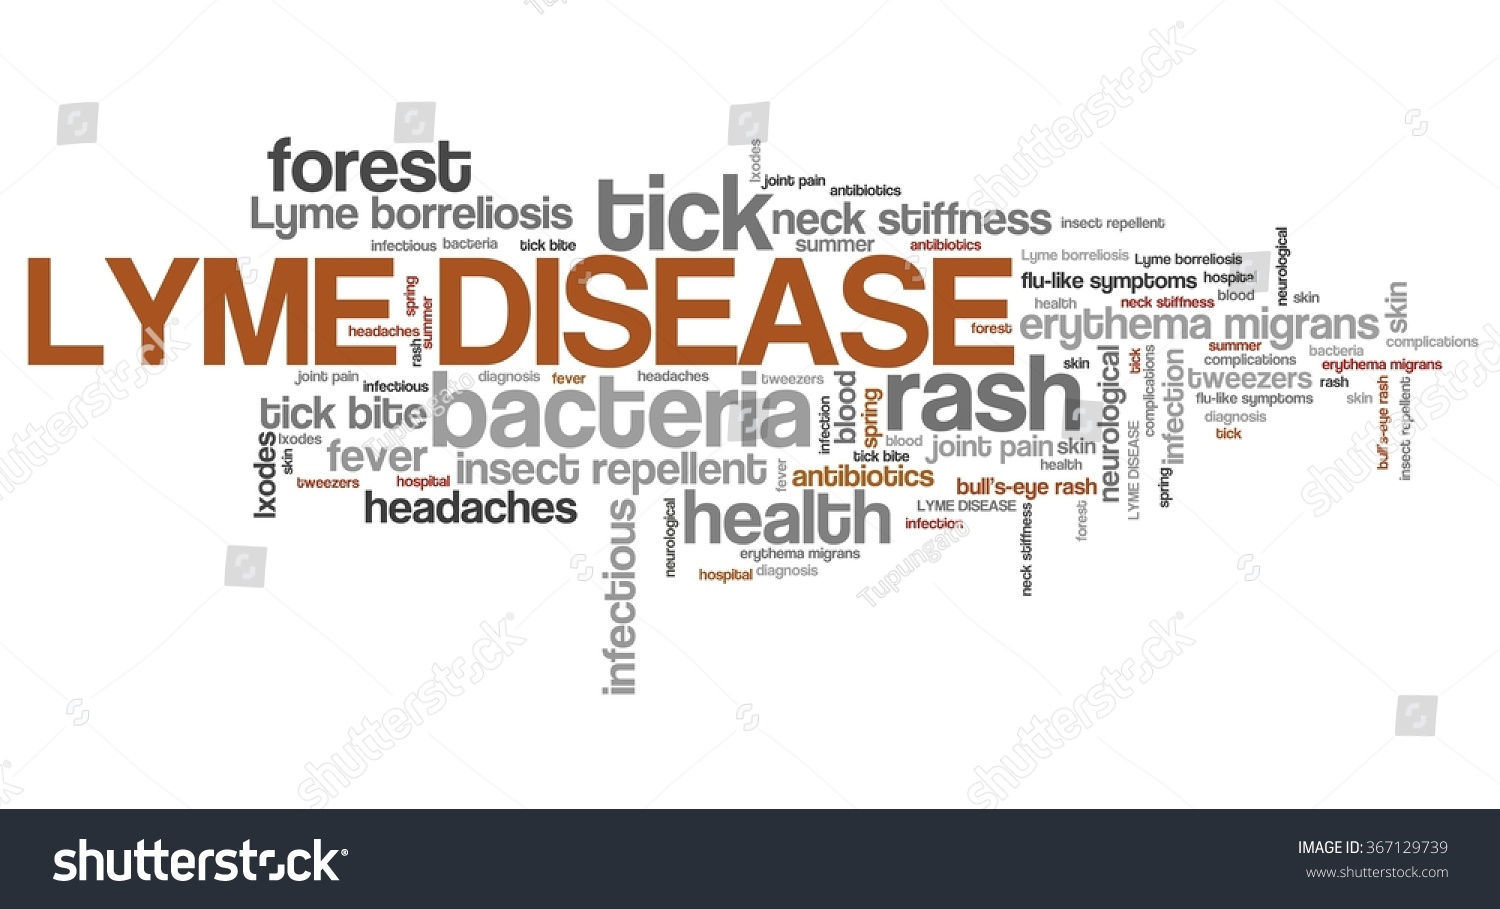 Lyme Disease Tick Borne Infectious Sickness Stock Illustration 367129739 - Shutterstock